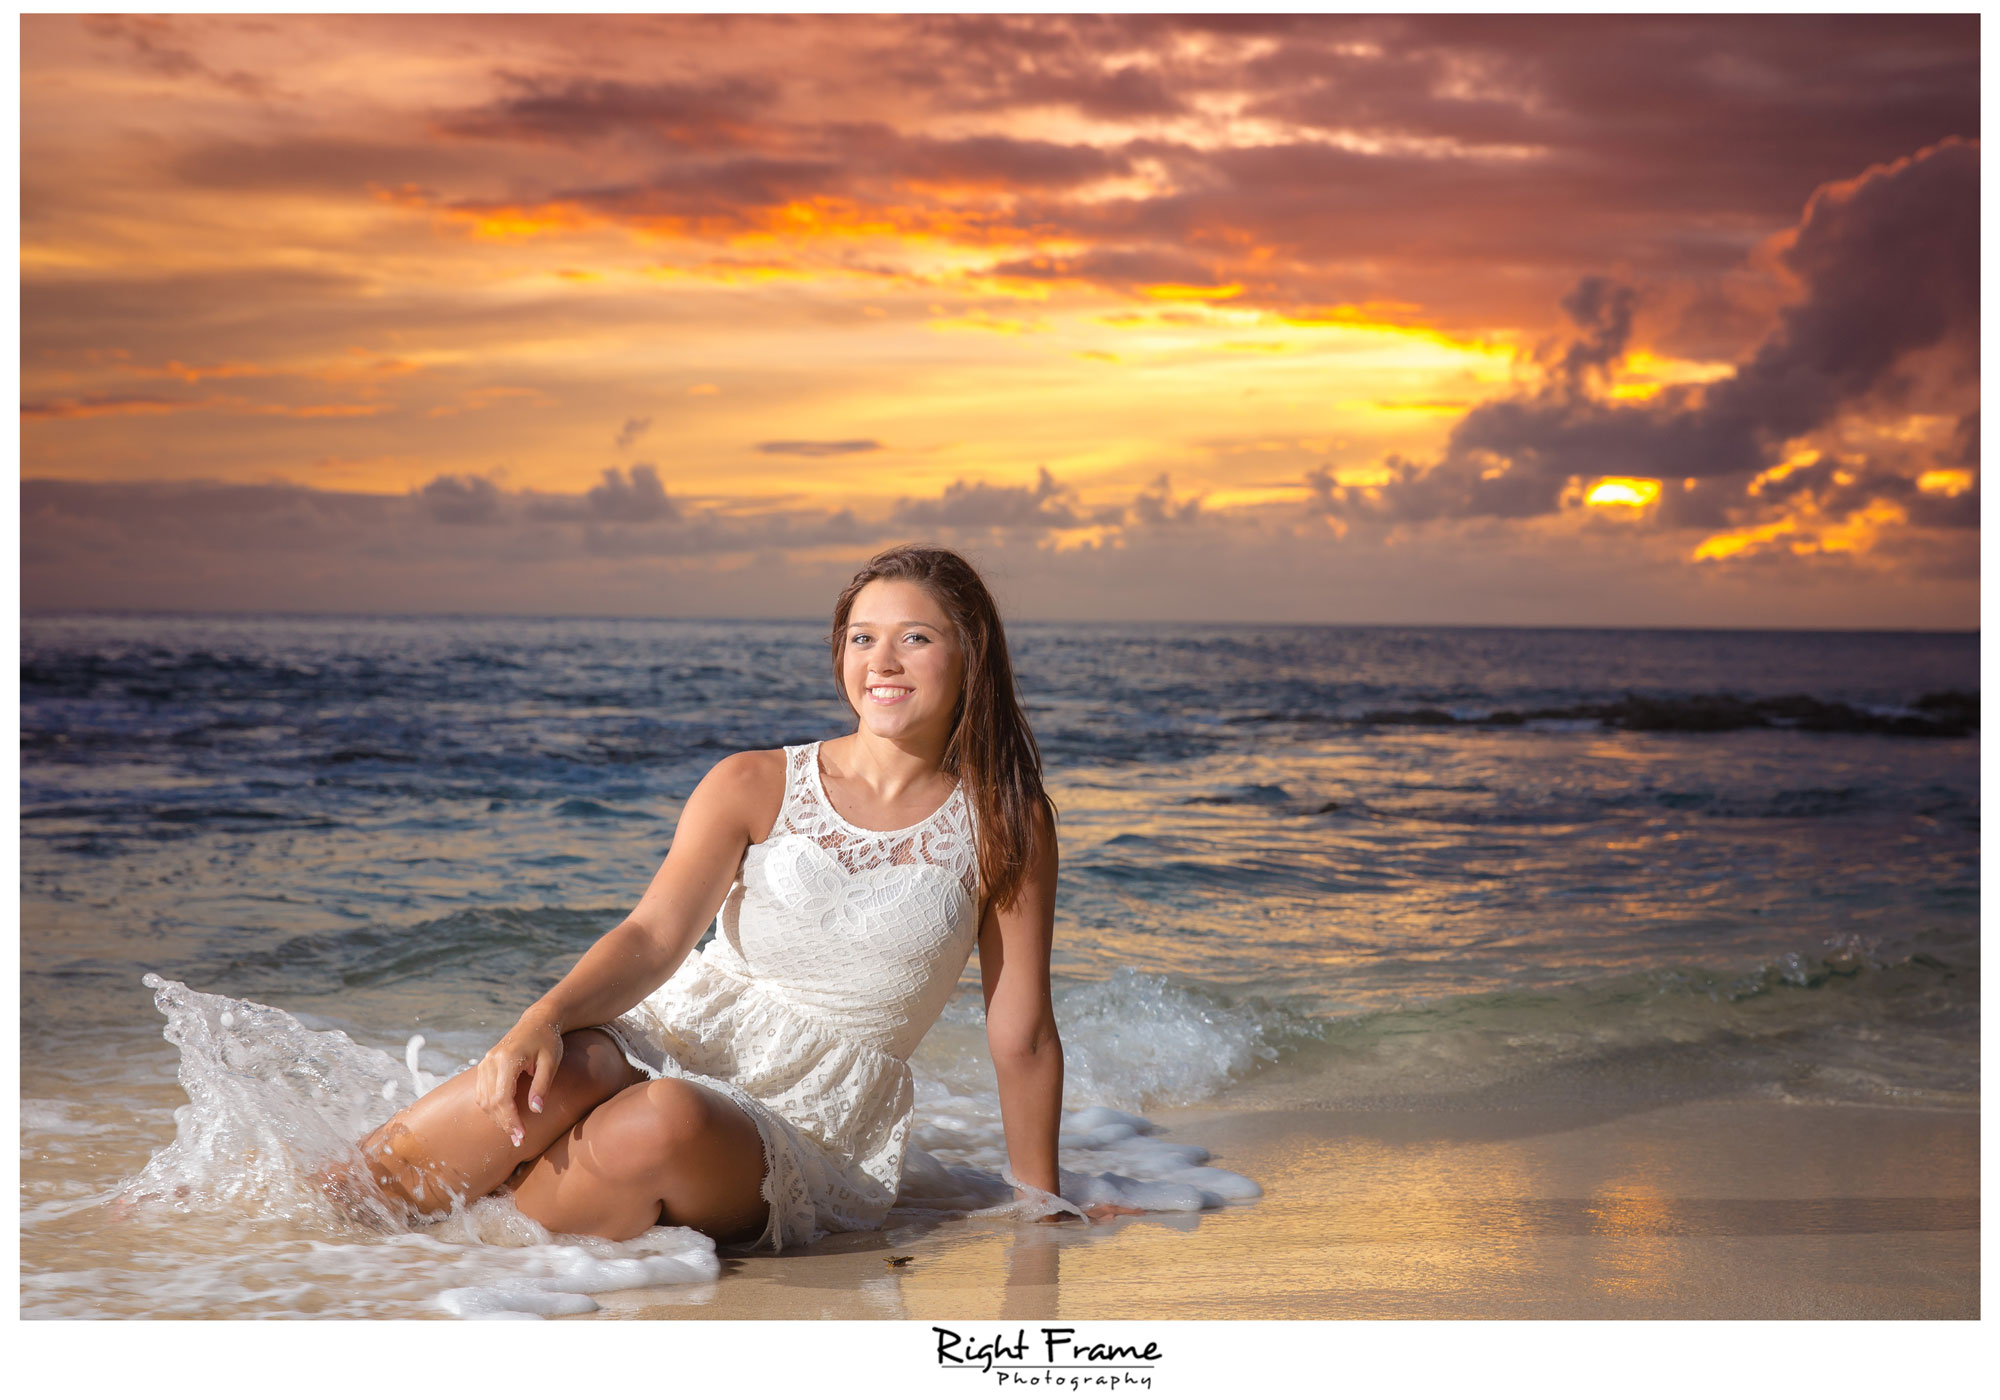 Beach Pics Ideas Senior Portraits In Hawaii Macy By Right Frame Photography